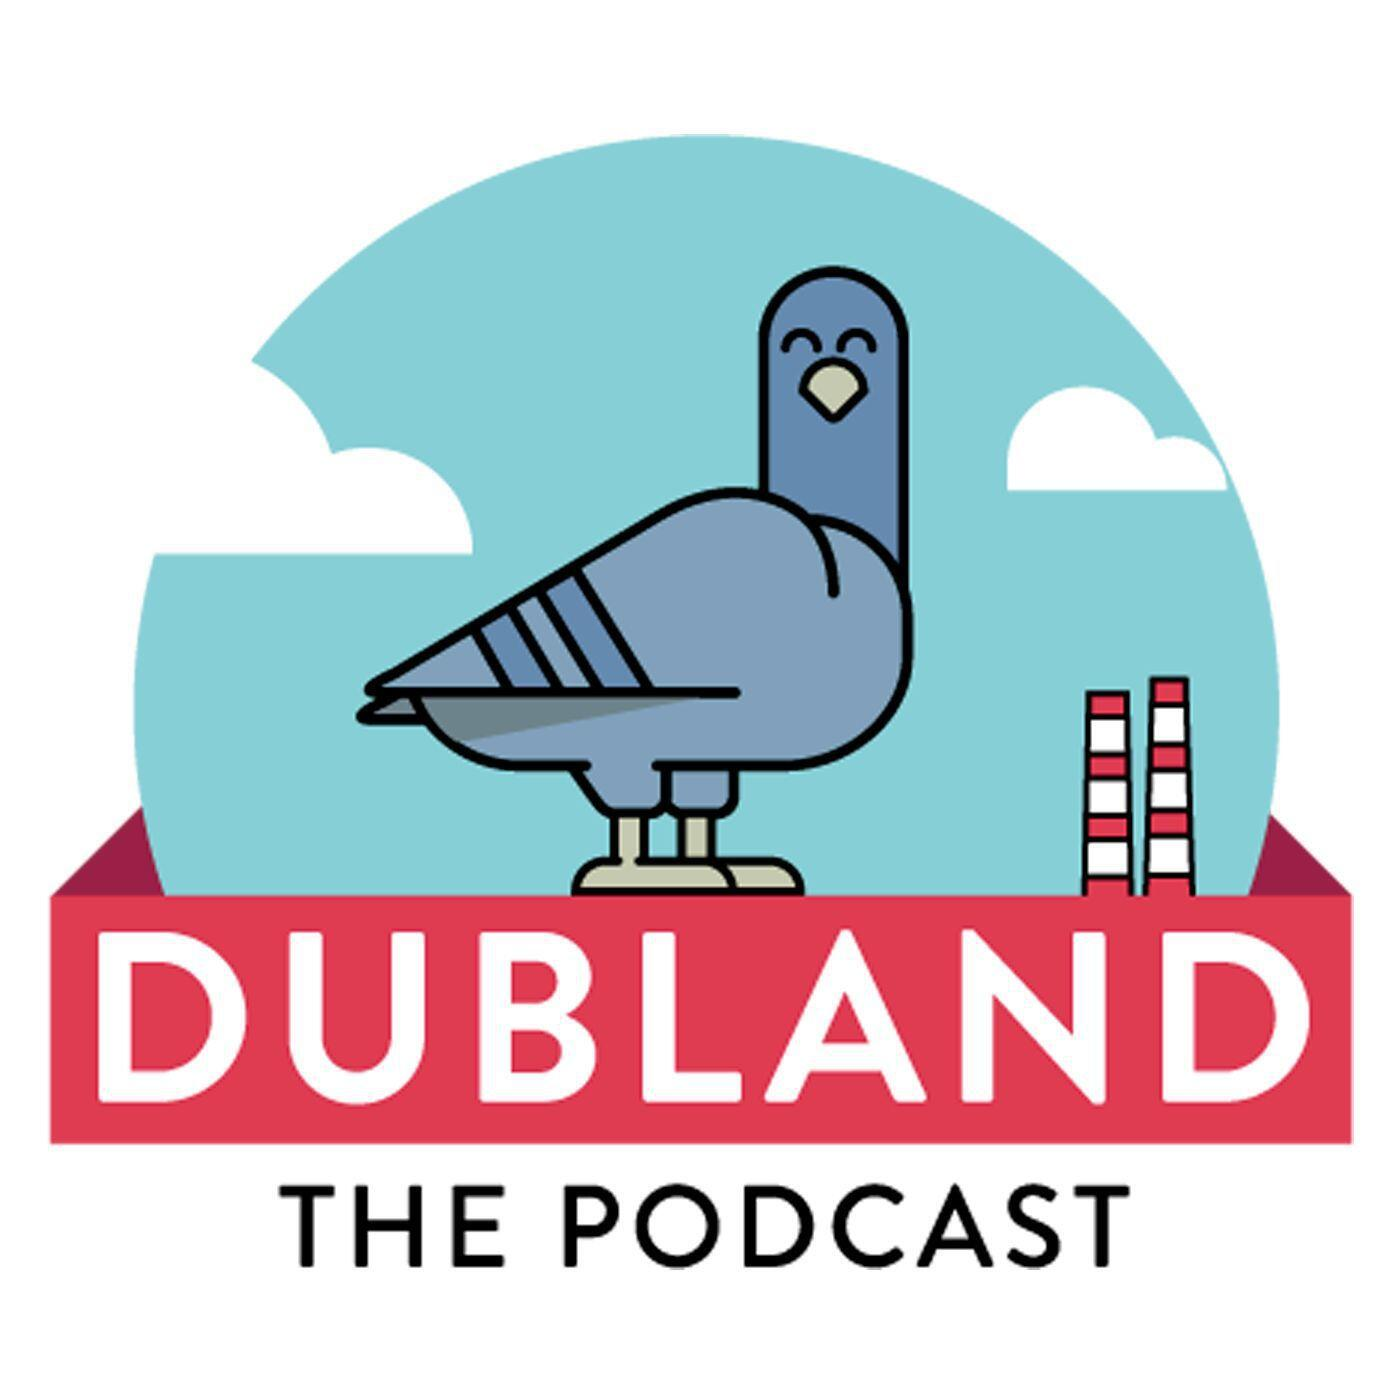 DUBLAND THE PODCAST EPISODE THREE